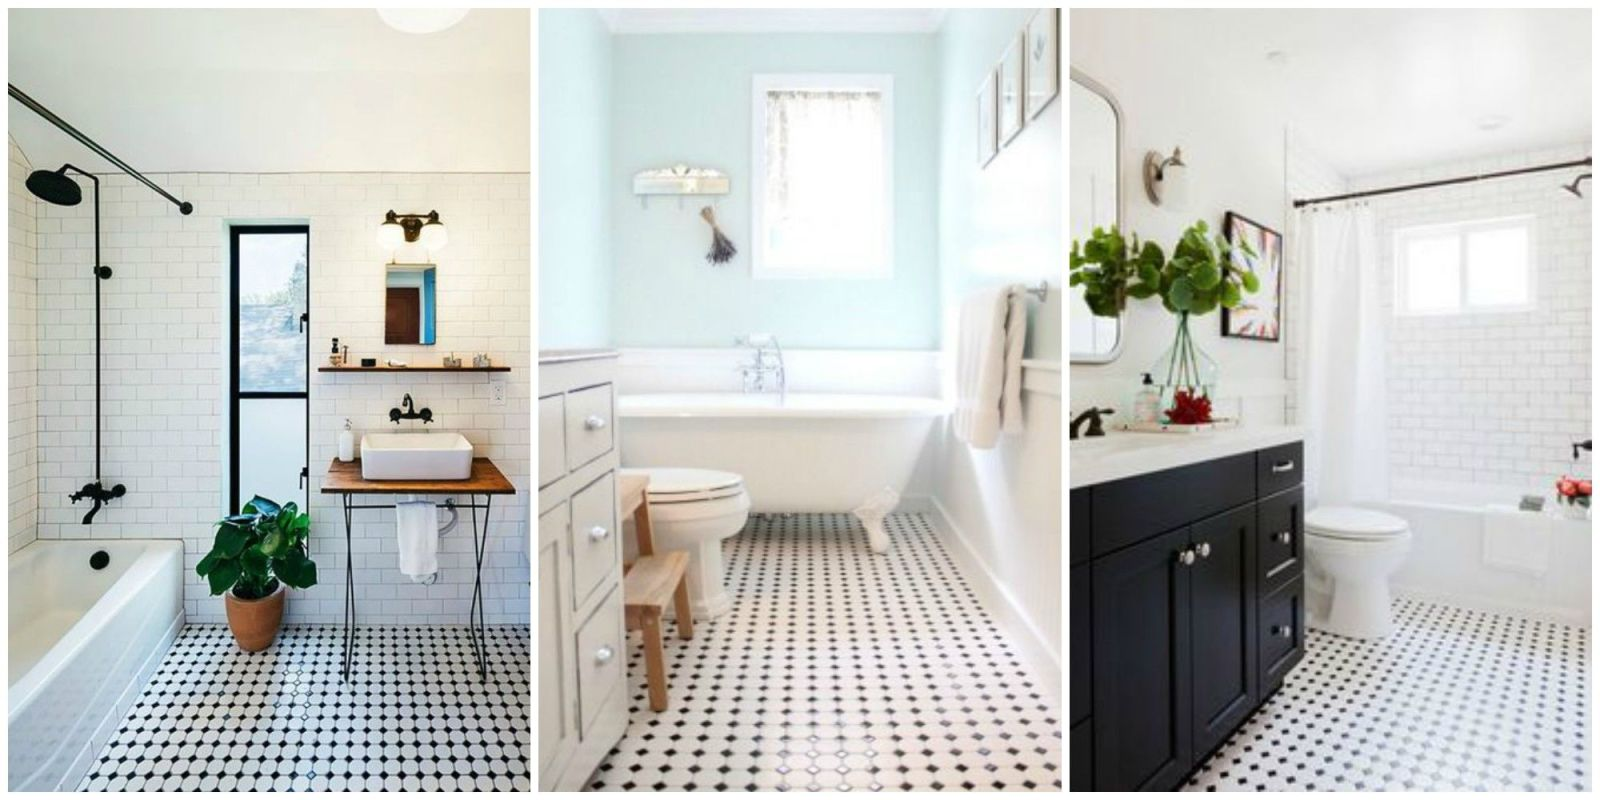 Classic black and white tiled bathroom floors are making a for Bathroom design inspiration